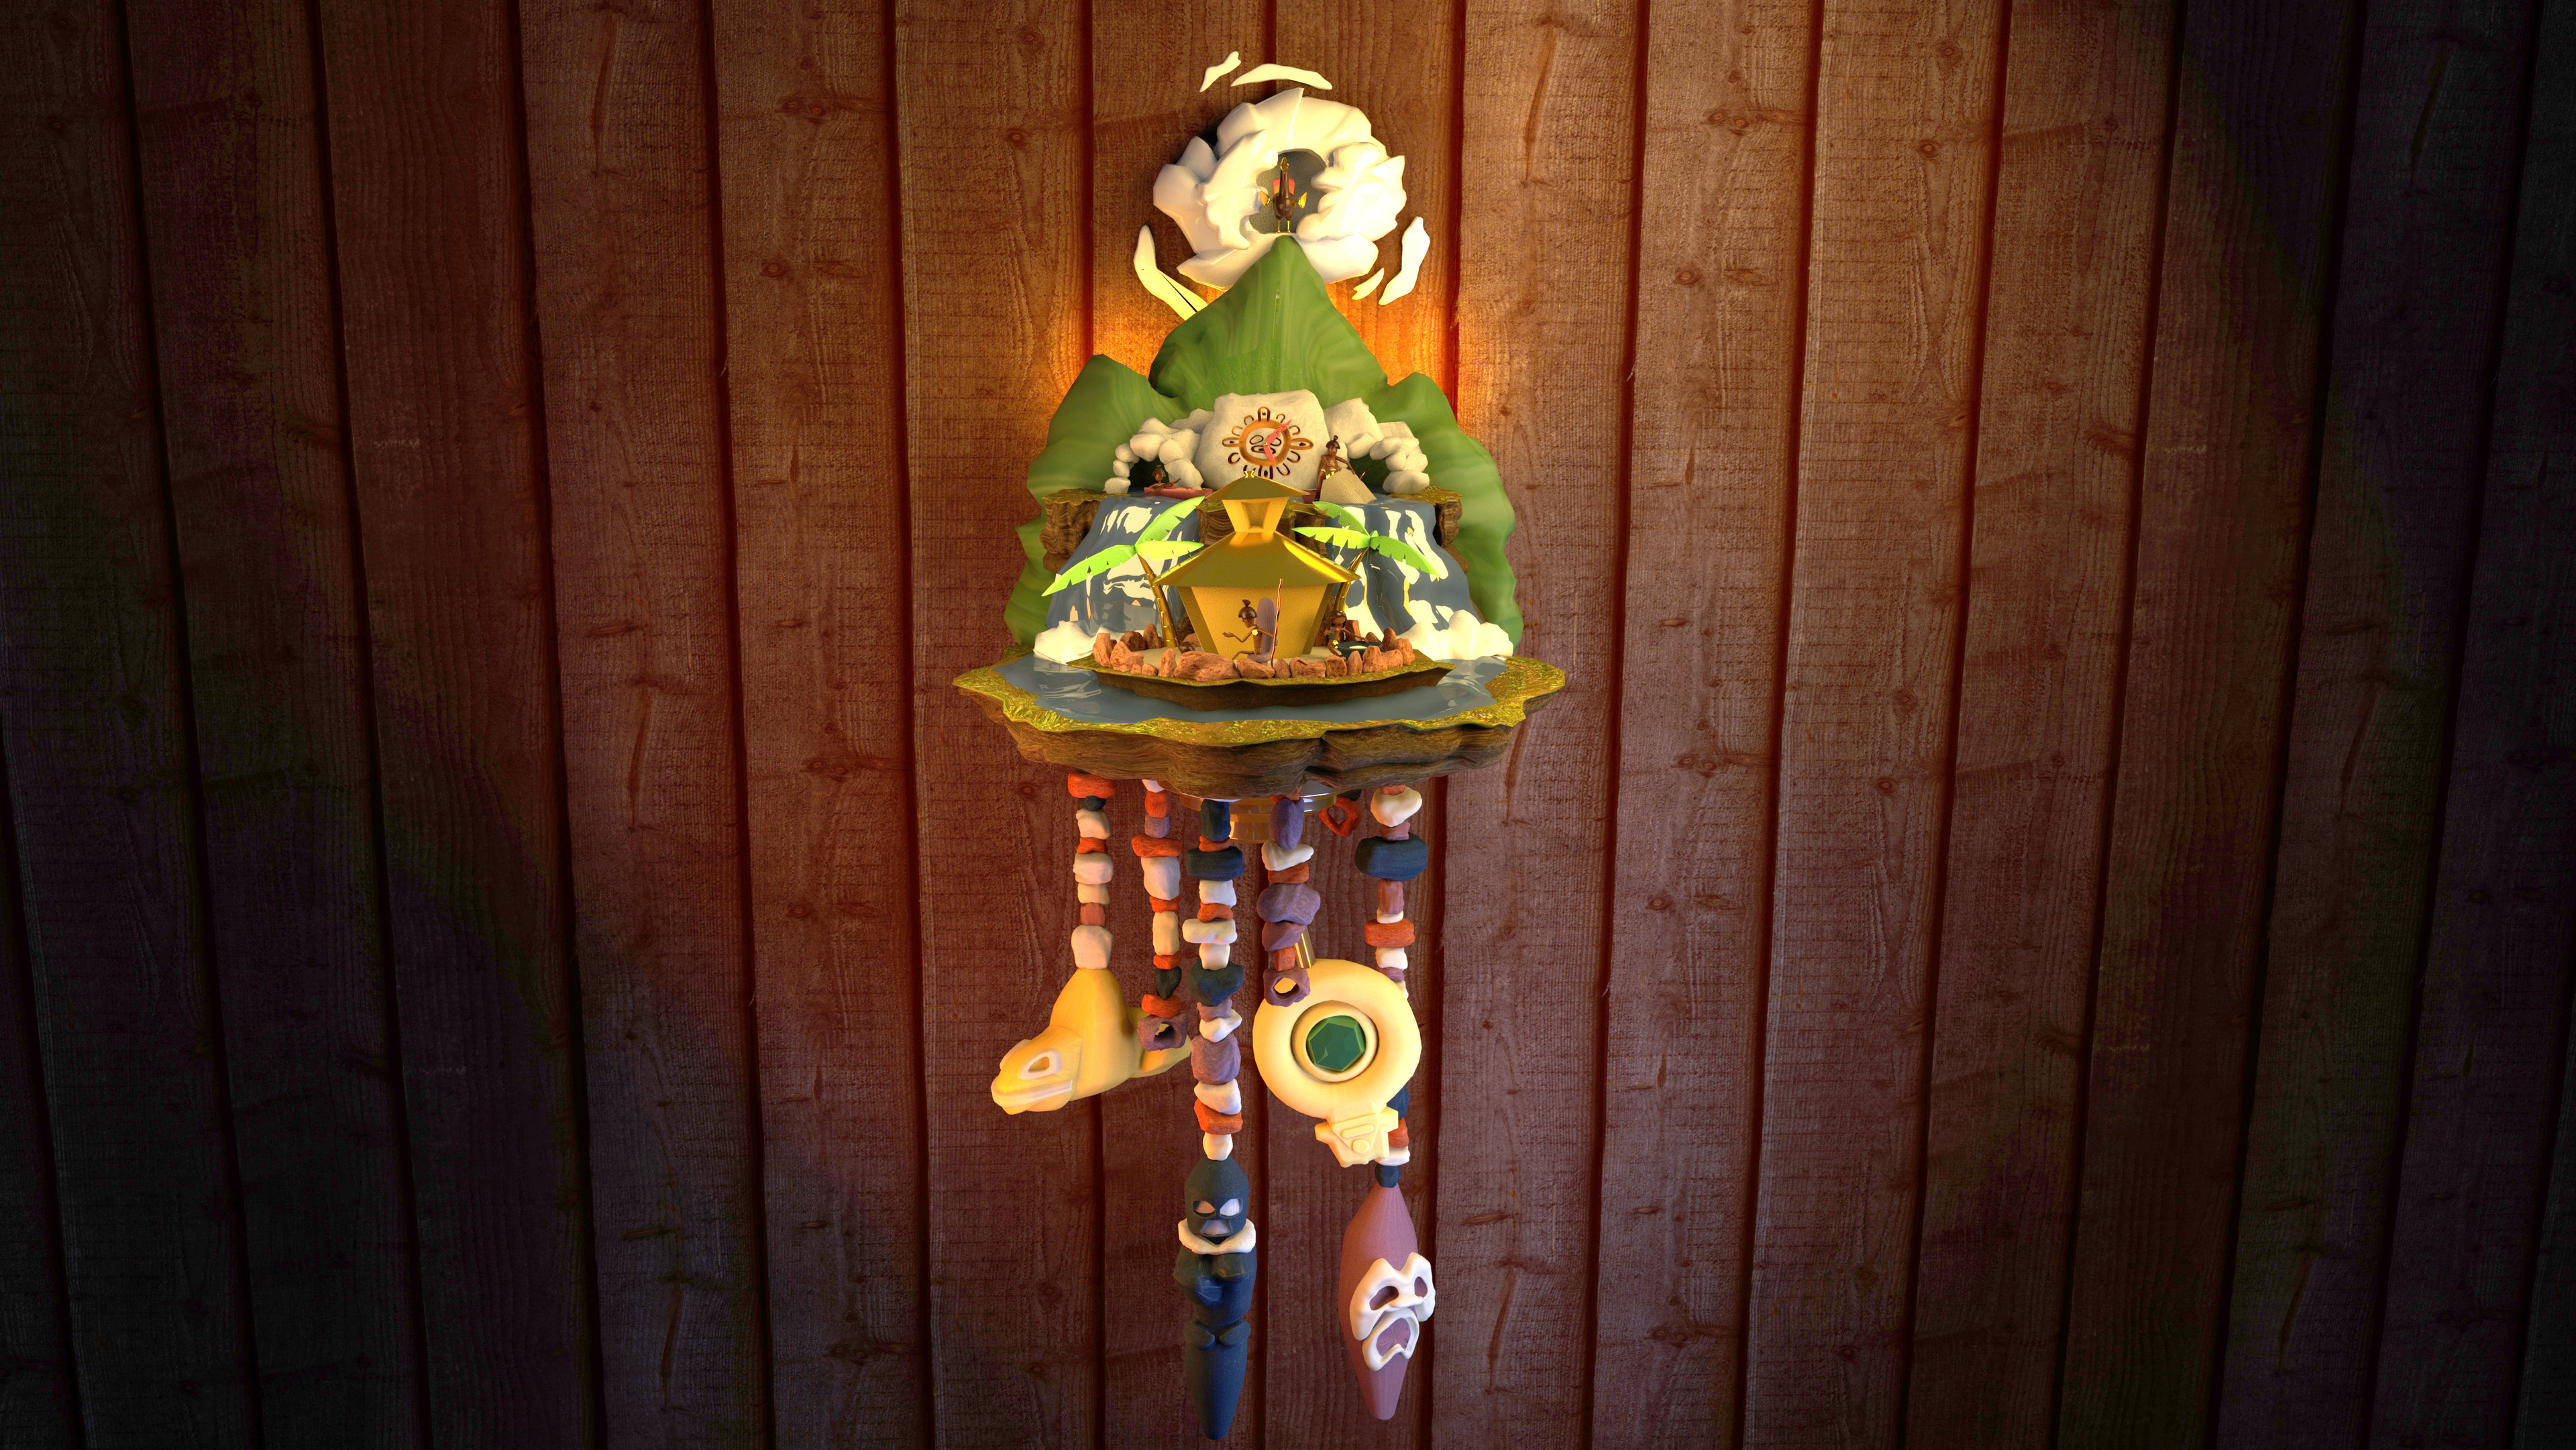 Full front view of Cuckoo Clock